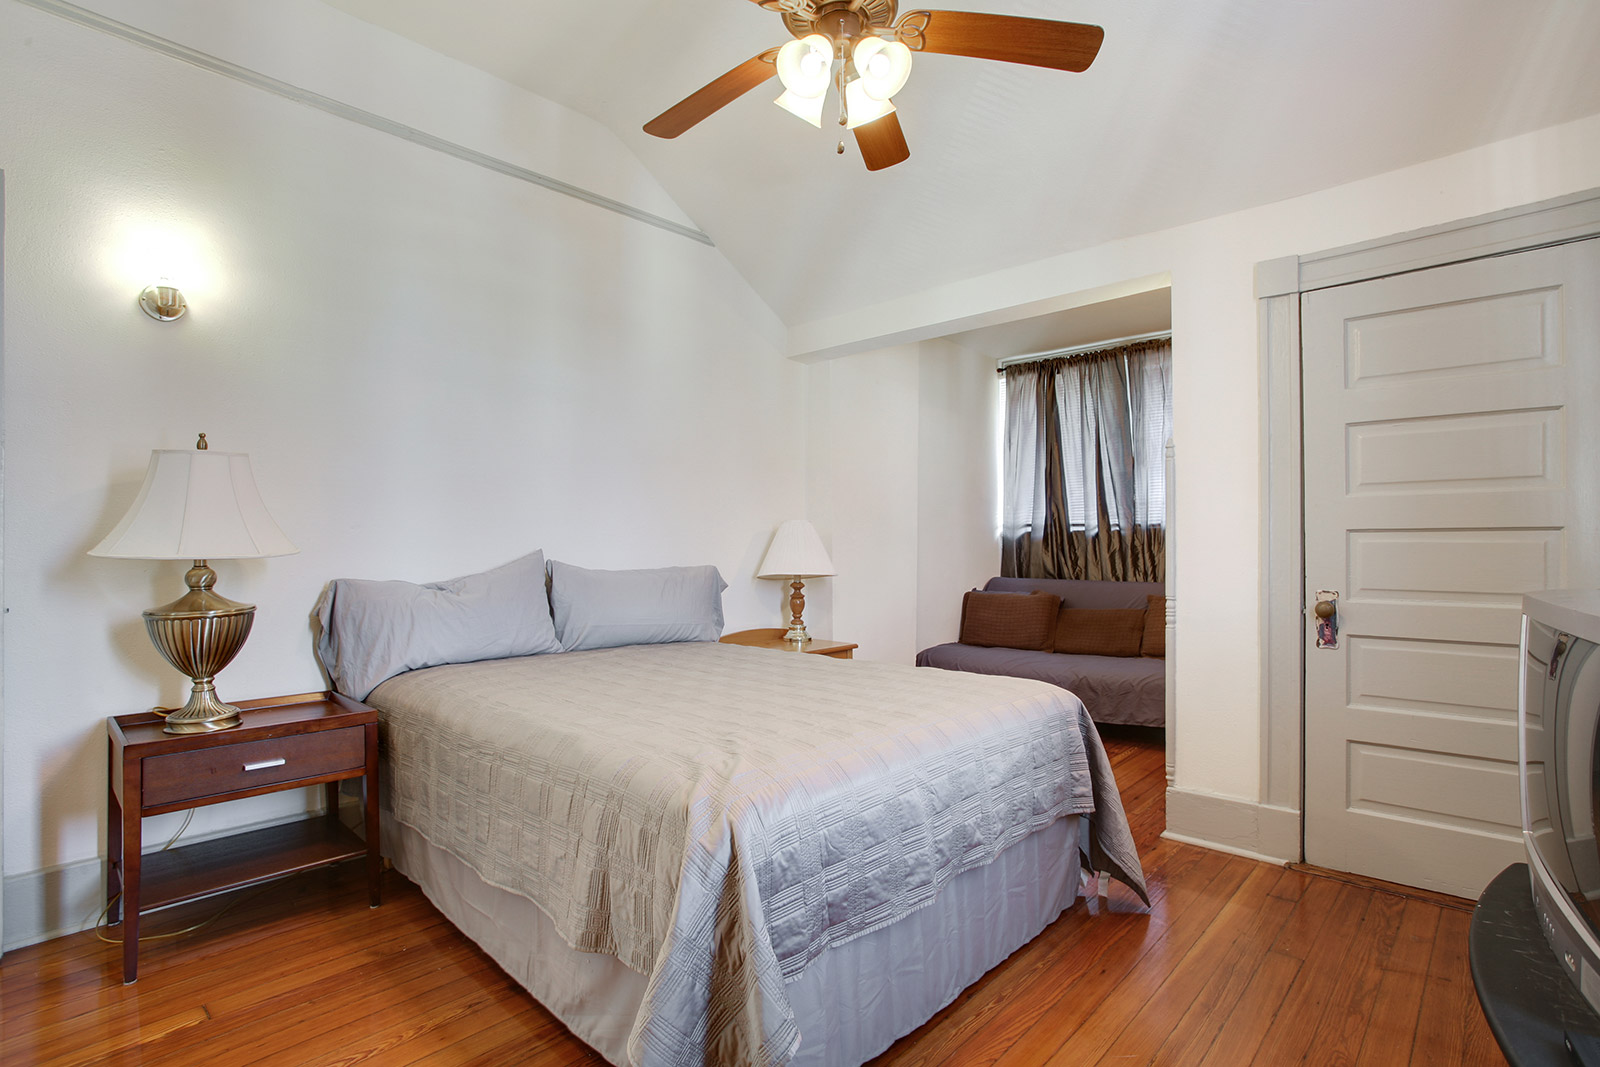 Airbnb Alternative Property in New Orleans